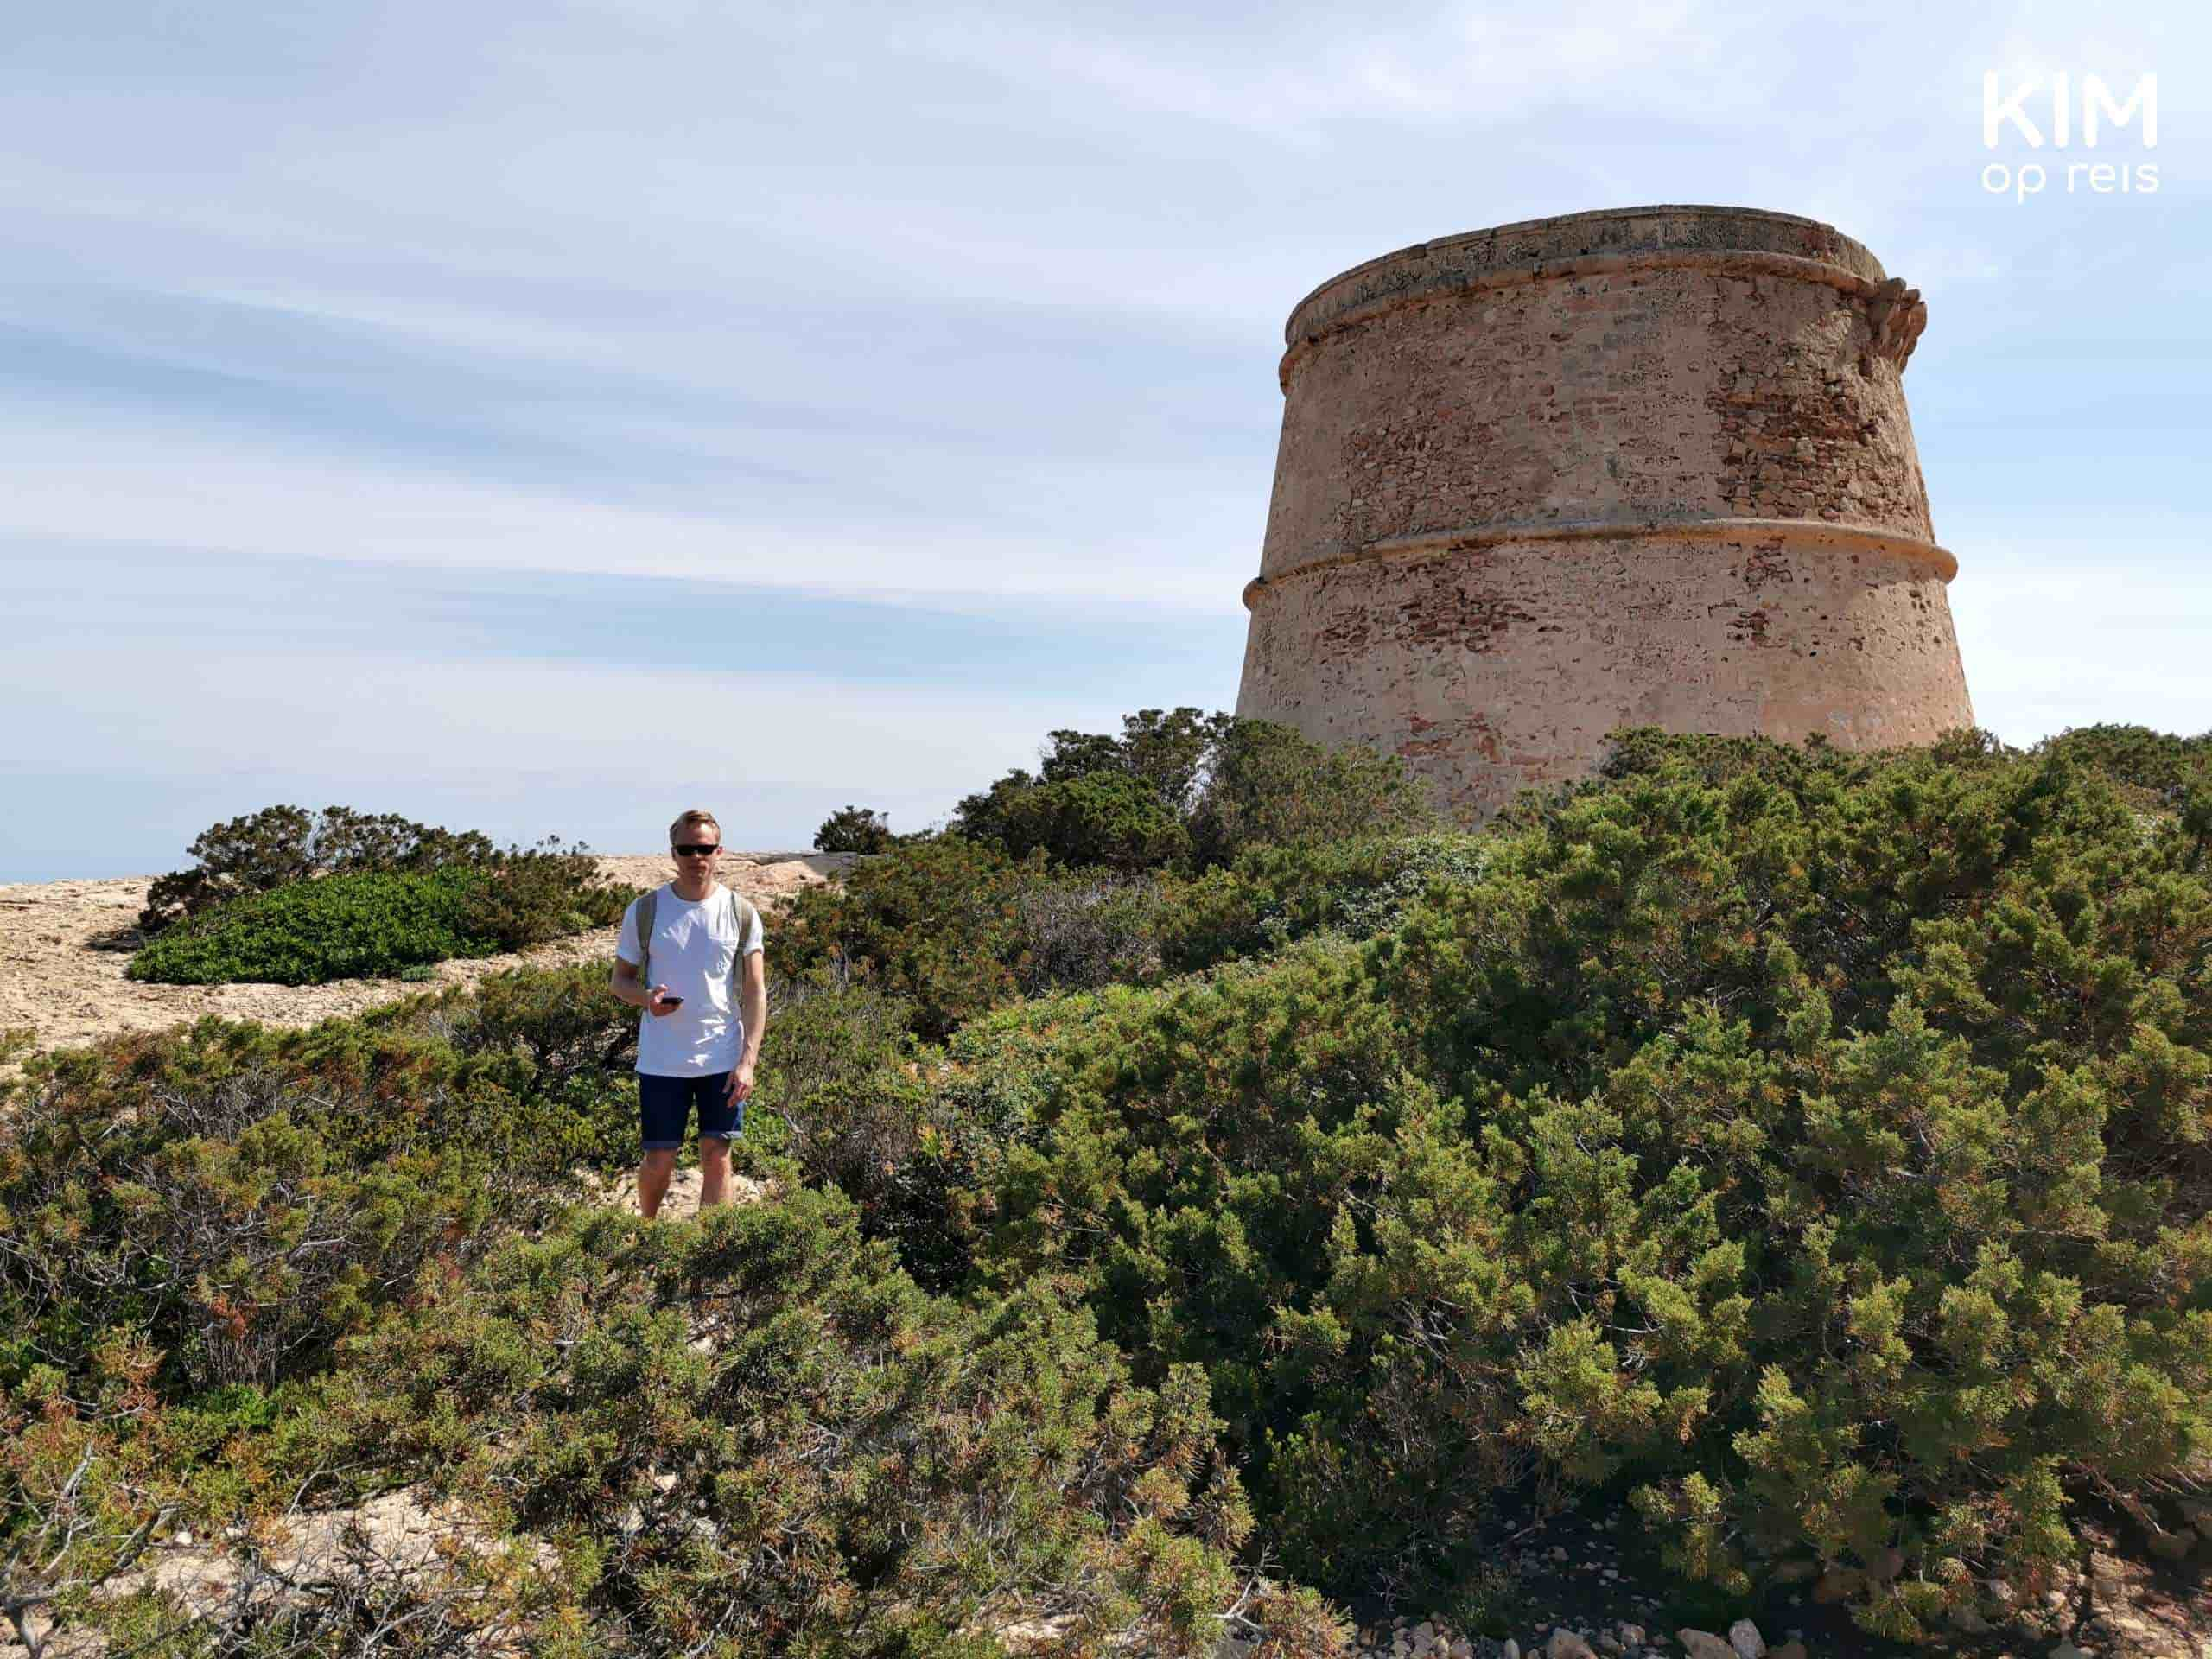 Torre d'en Rovira Ibiza overgrown: a man stands between the bushes, in the background the round tower